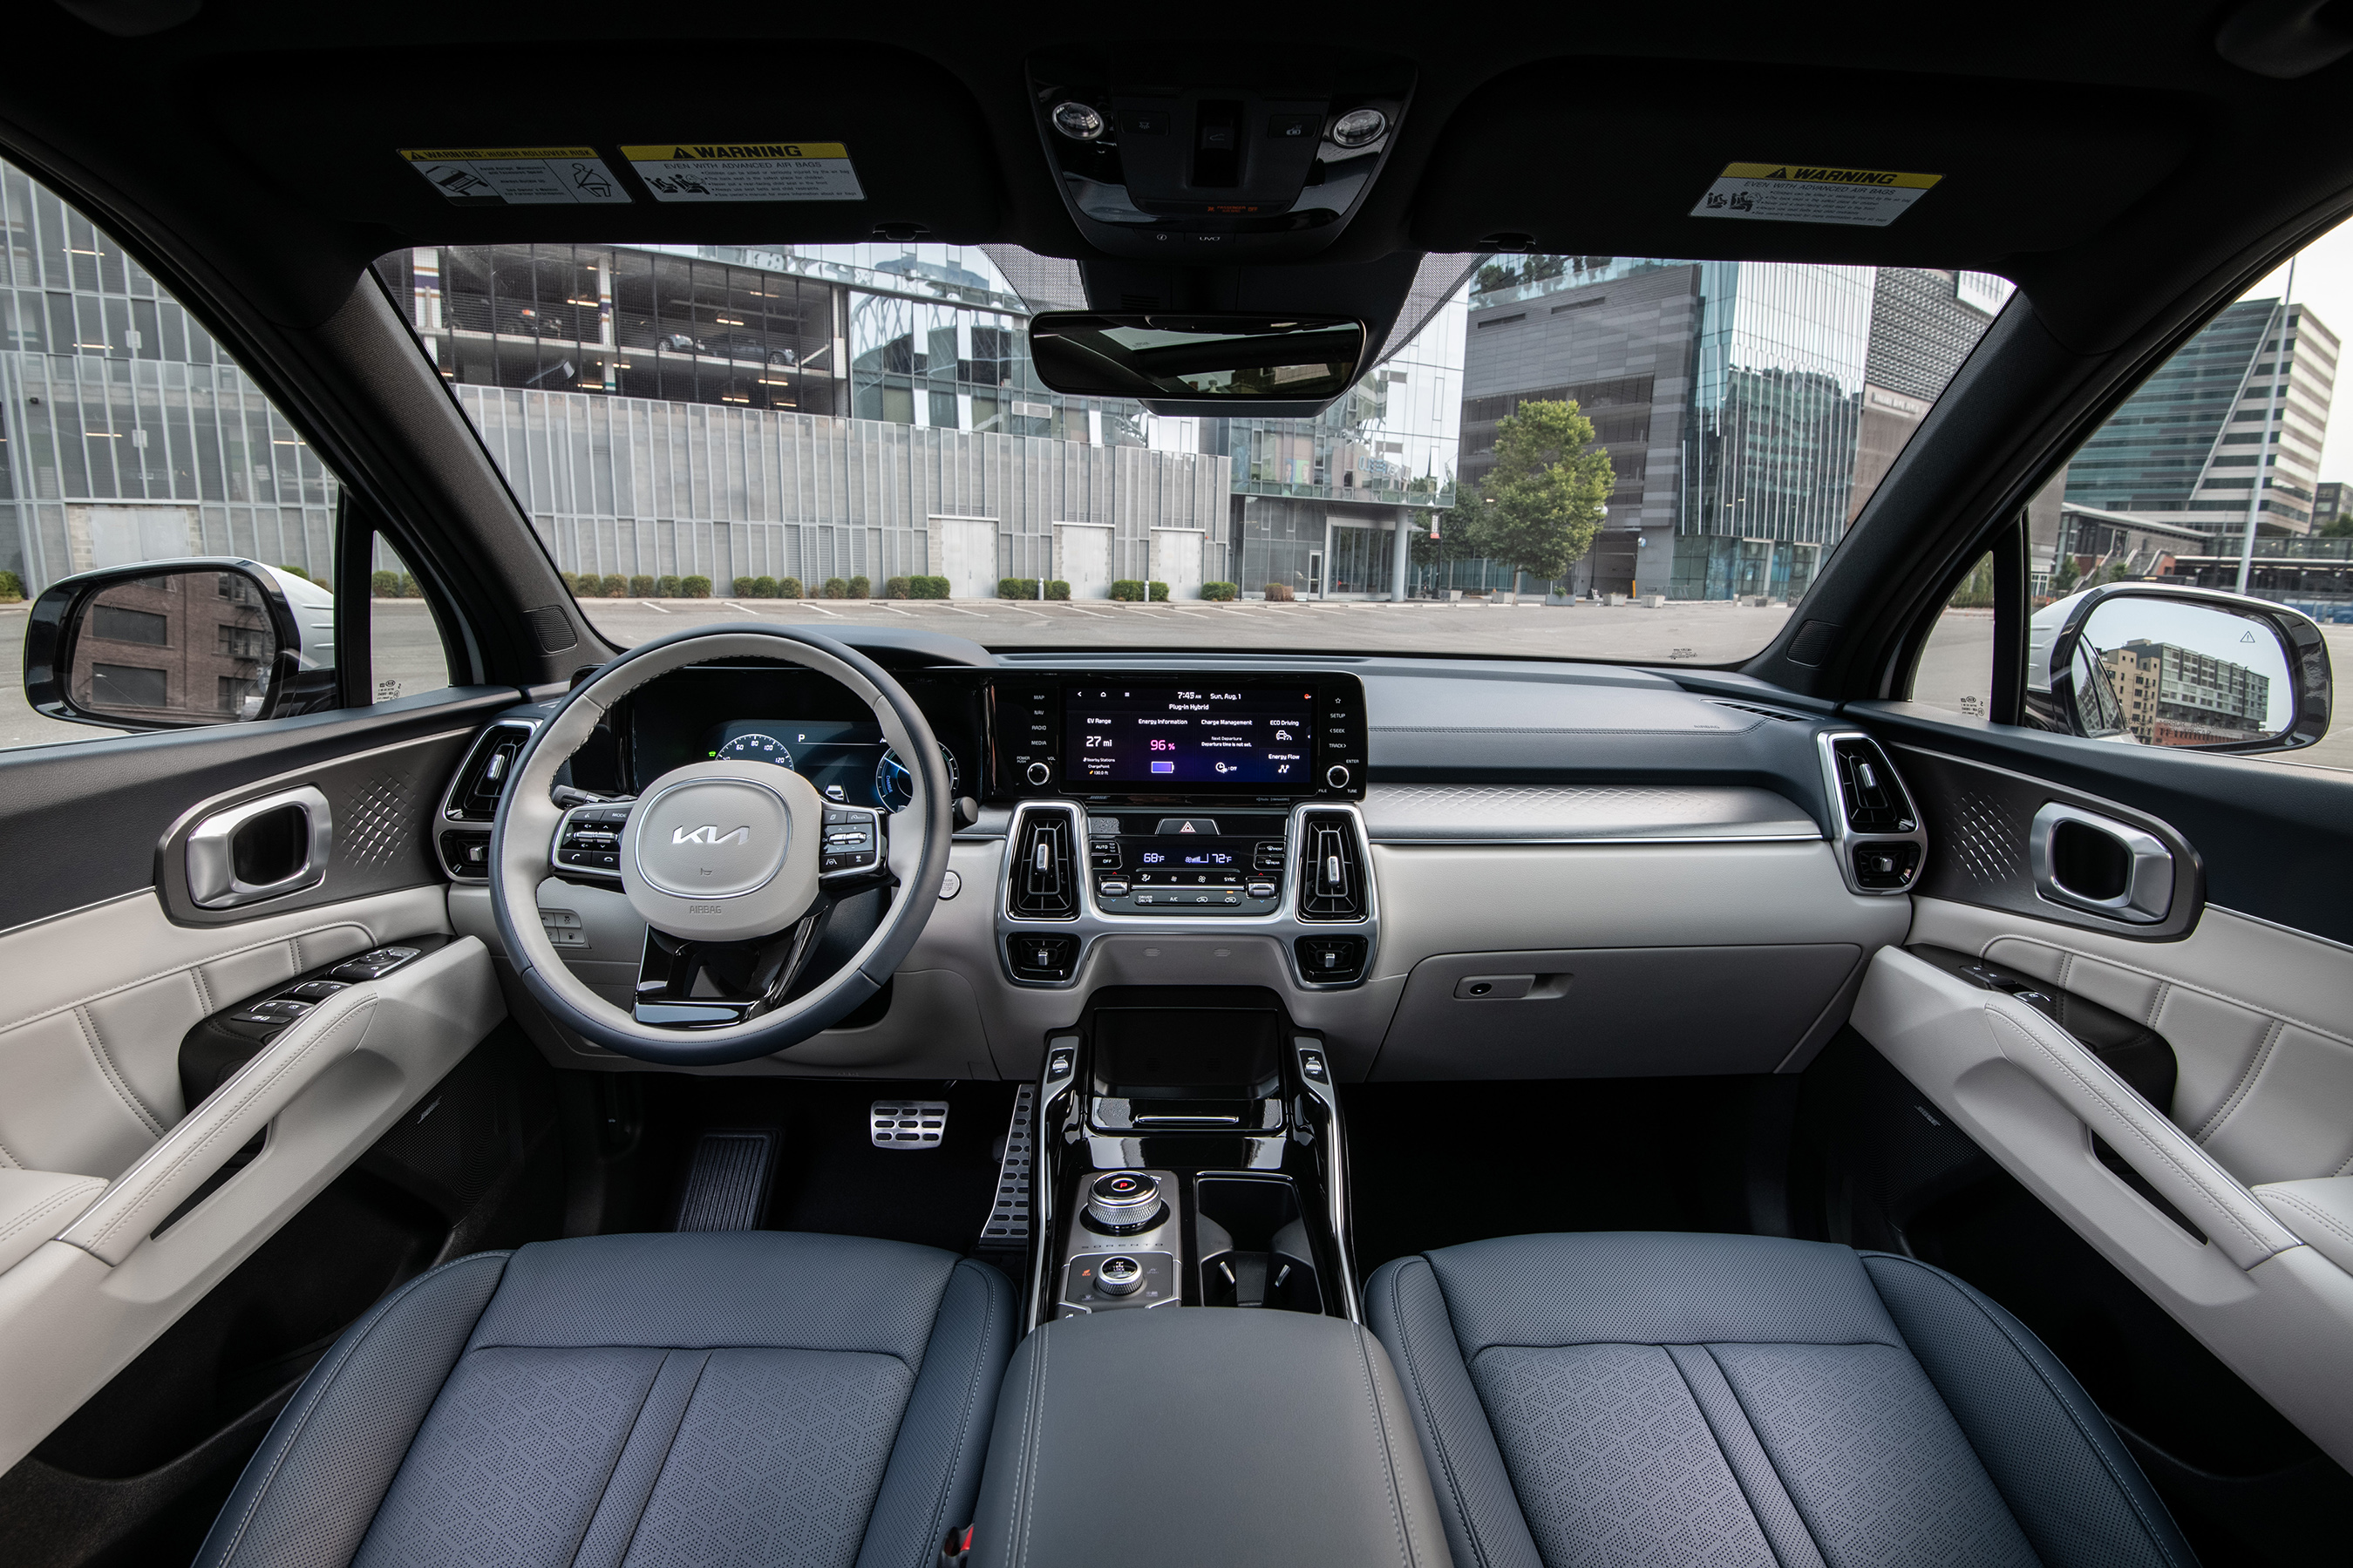 The Sorento PHEV delivers an upscale and feature-rich cabin accommodating up to six passengers and is the only mainstream PHEV SUV to offer three-row seating.